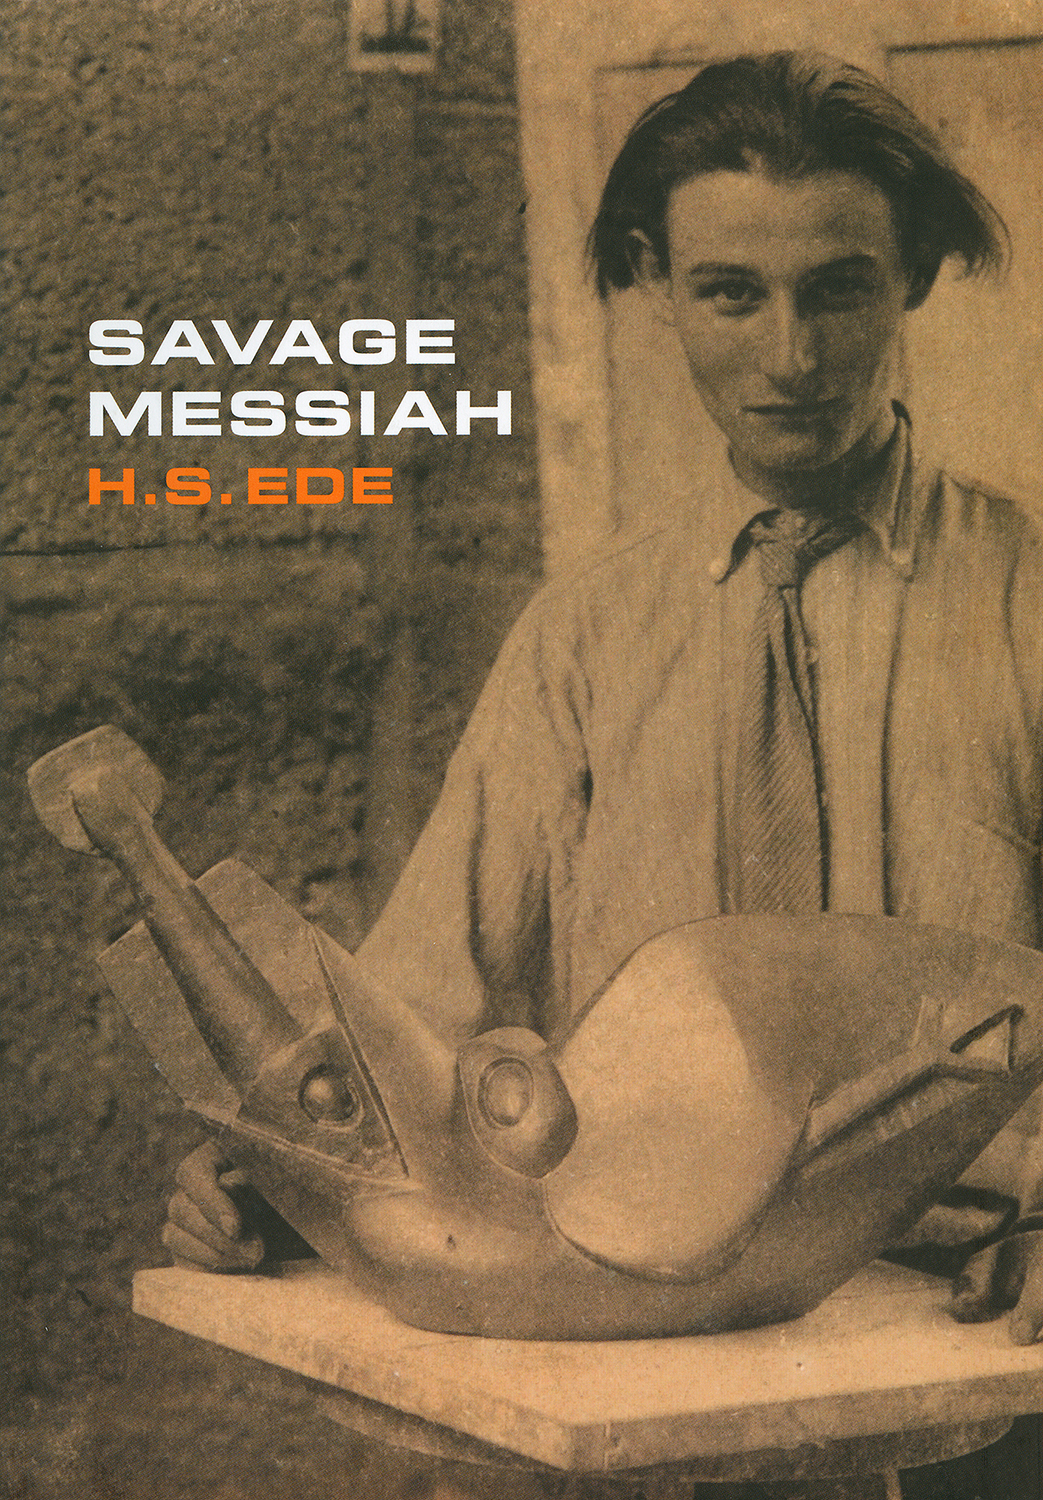 Savage Messiah